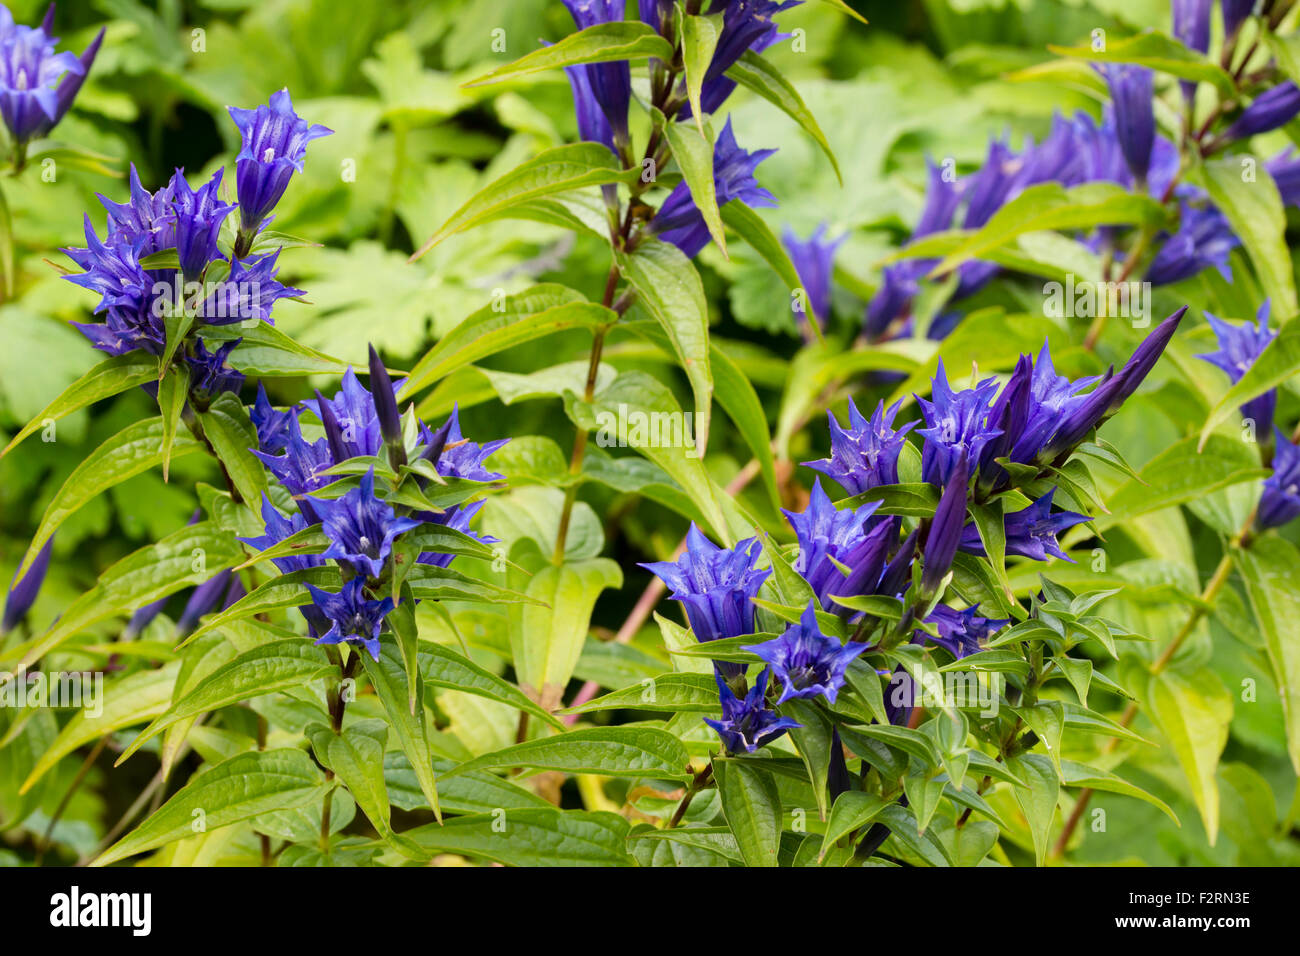 Blue, early autumn flowers of the perennial willow gentian, Gentiana asclepiadea - Stock Image